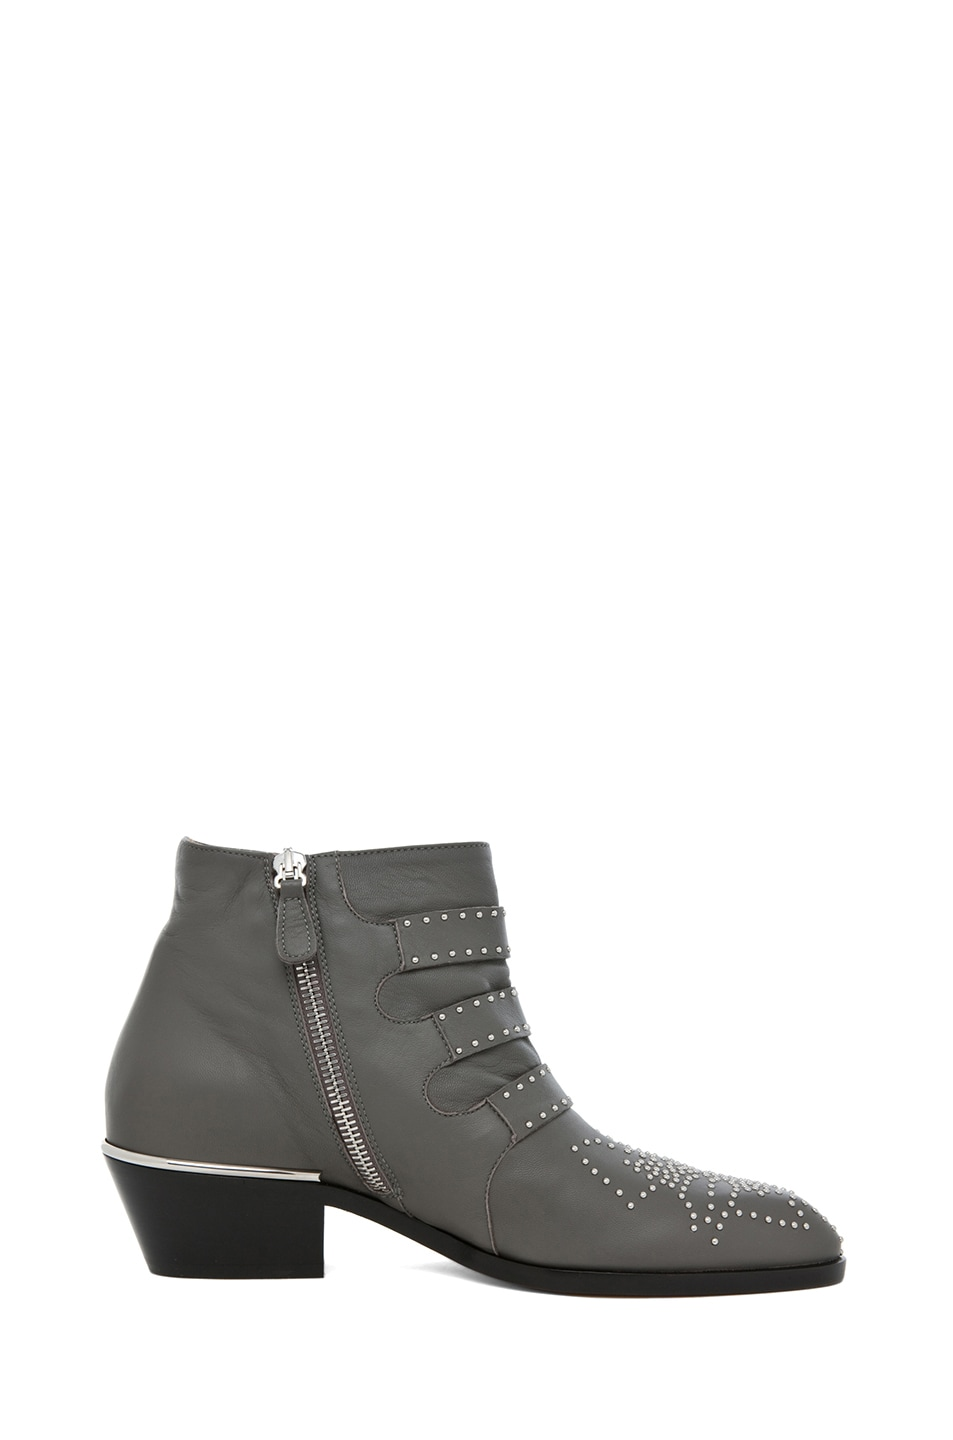 Image 5 of Chloe Susanna Studded Bootie in Charcoal